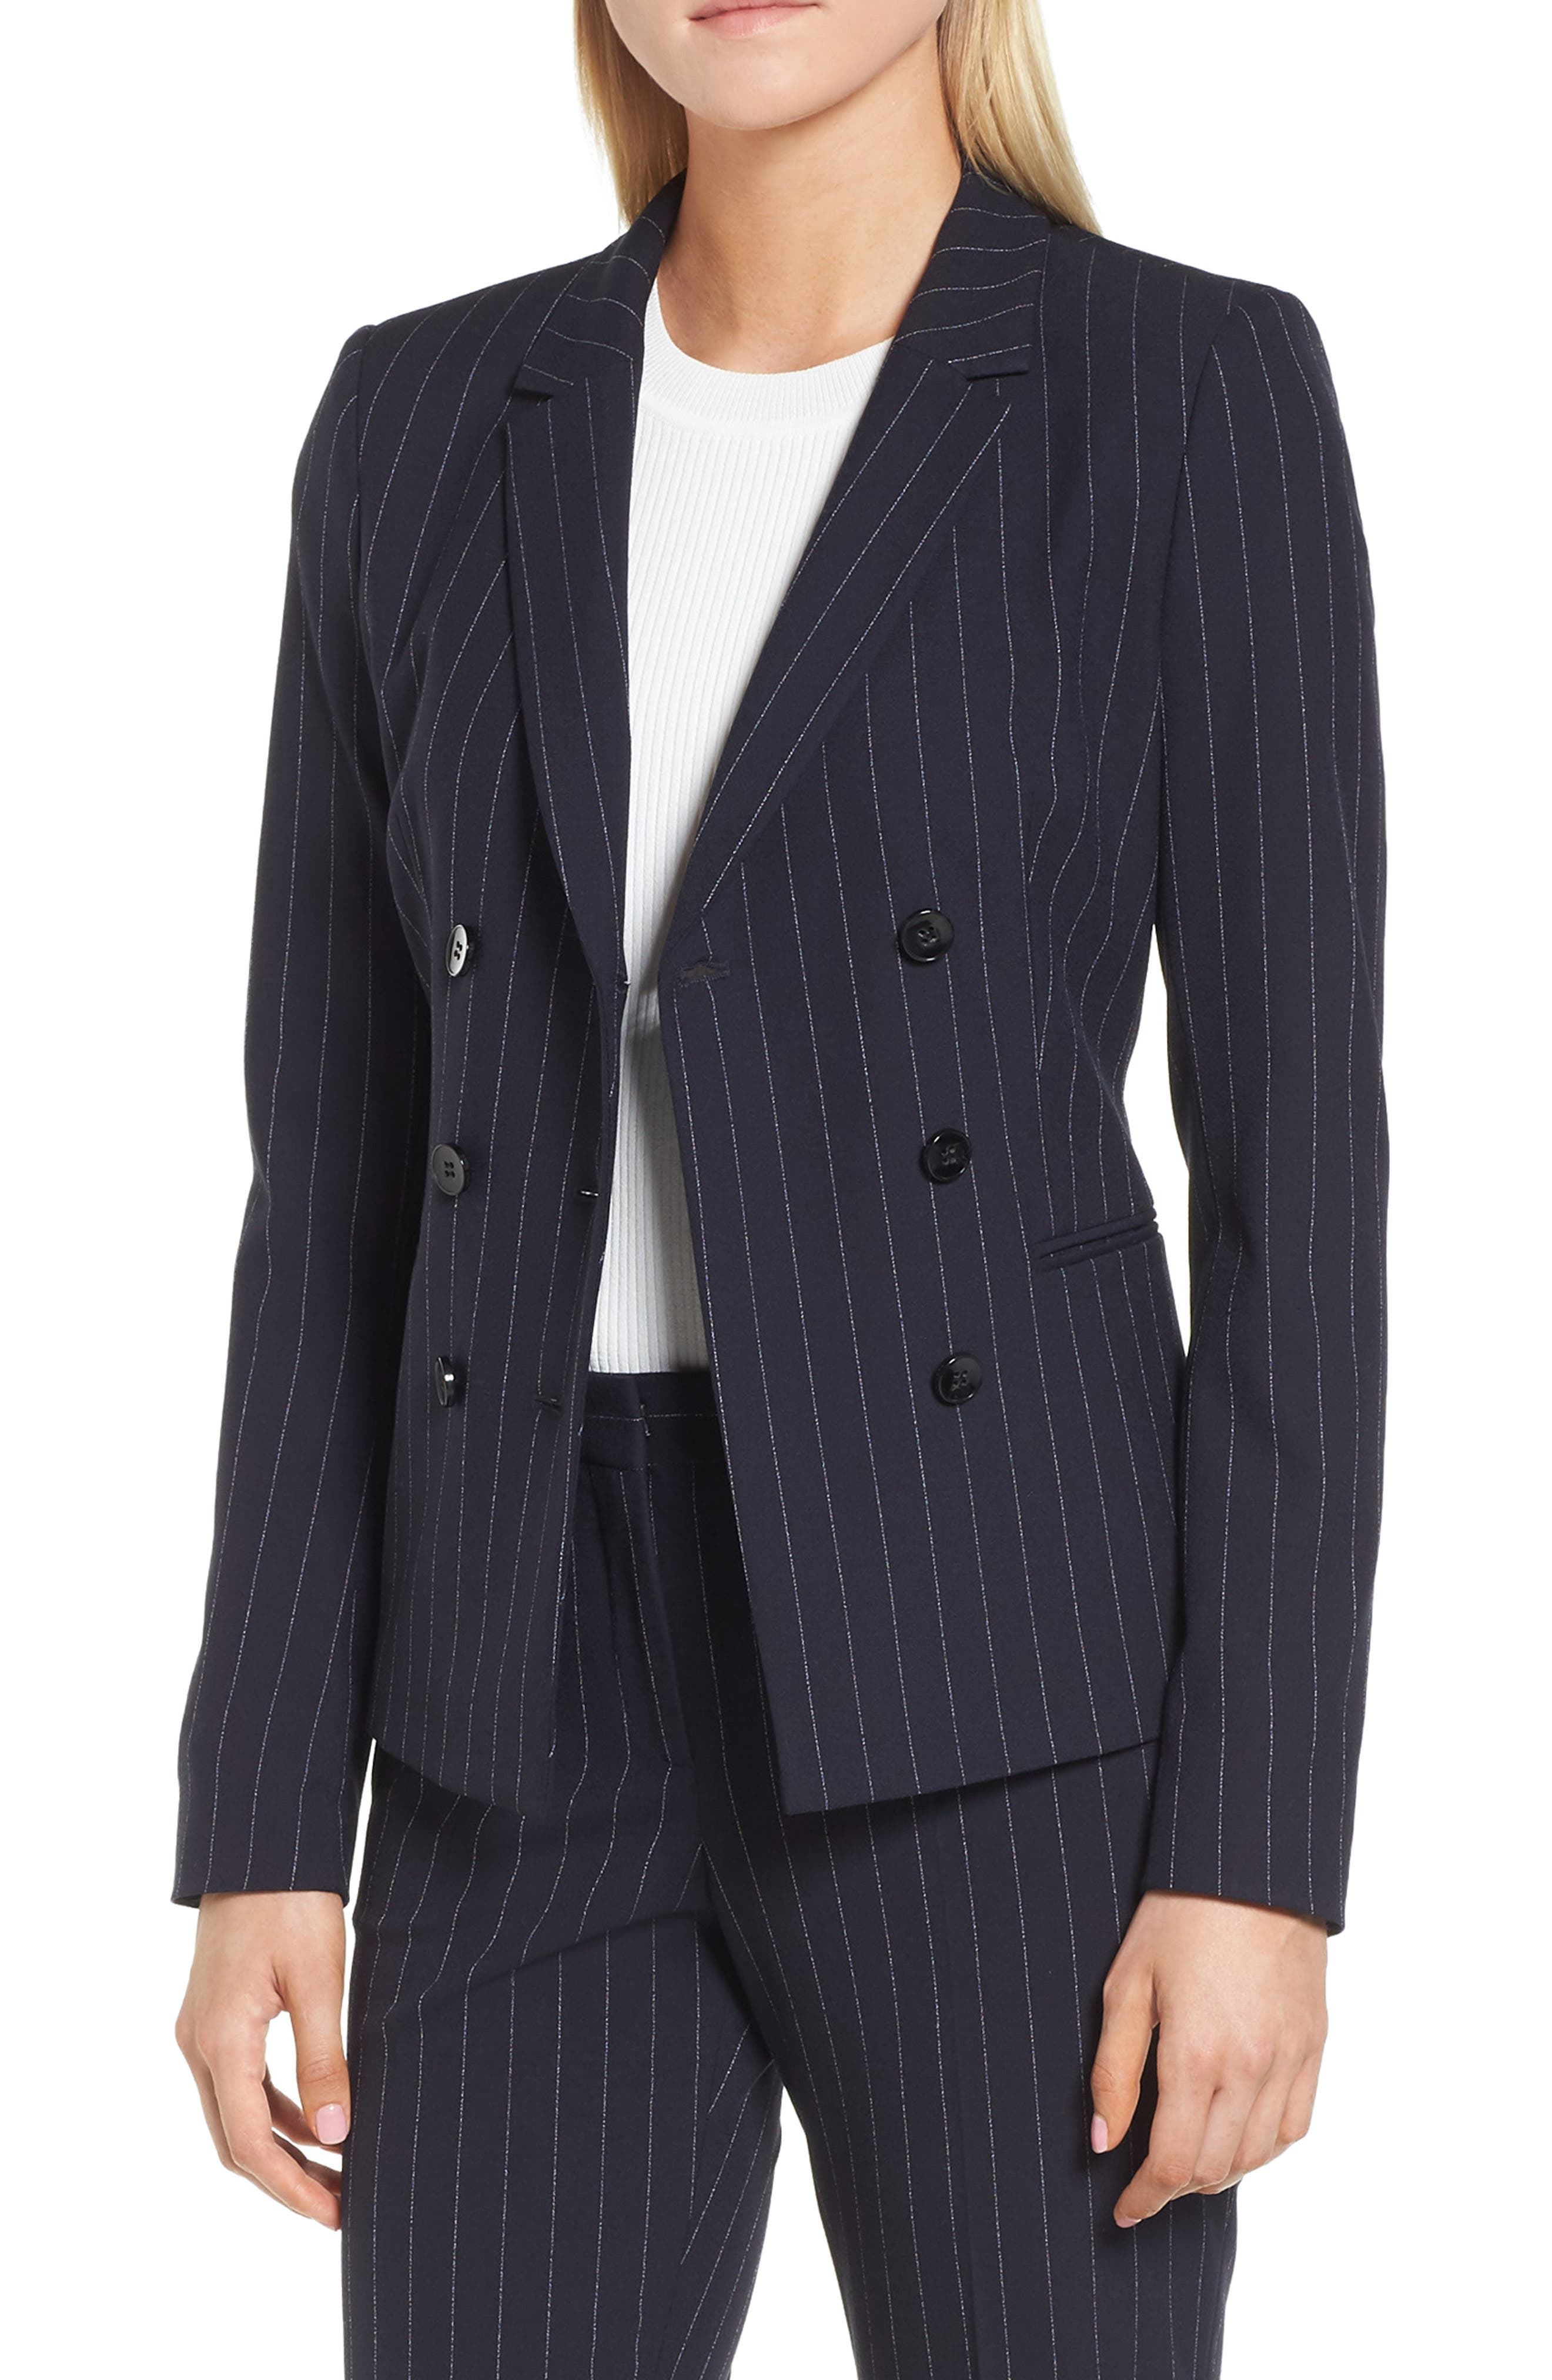 Jelaya Double Breasted Suit Jacket,                         Main,                         color, Navy Fantasy